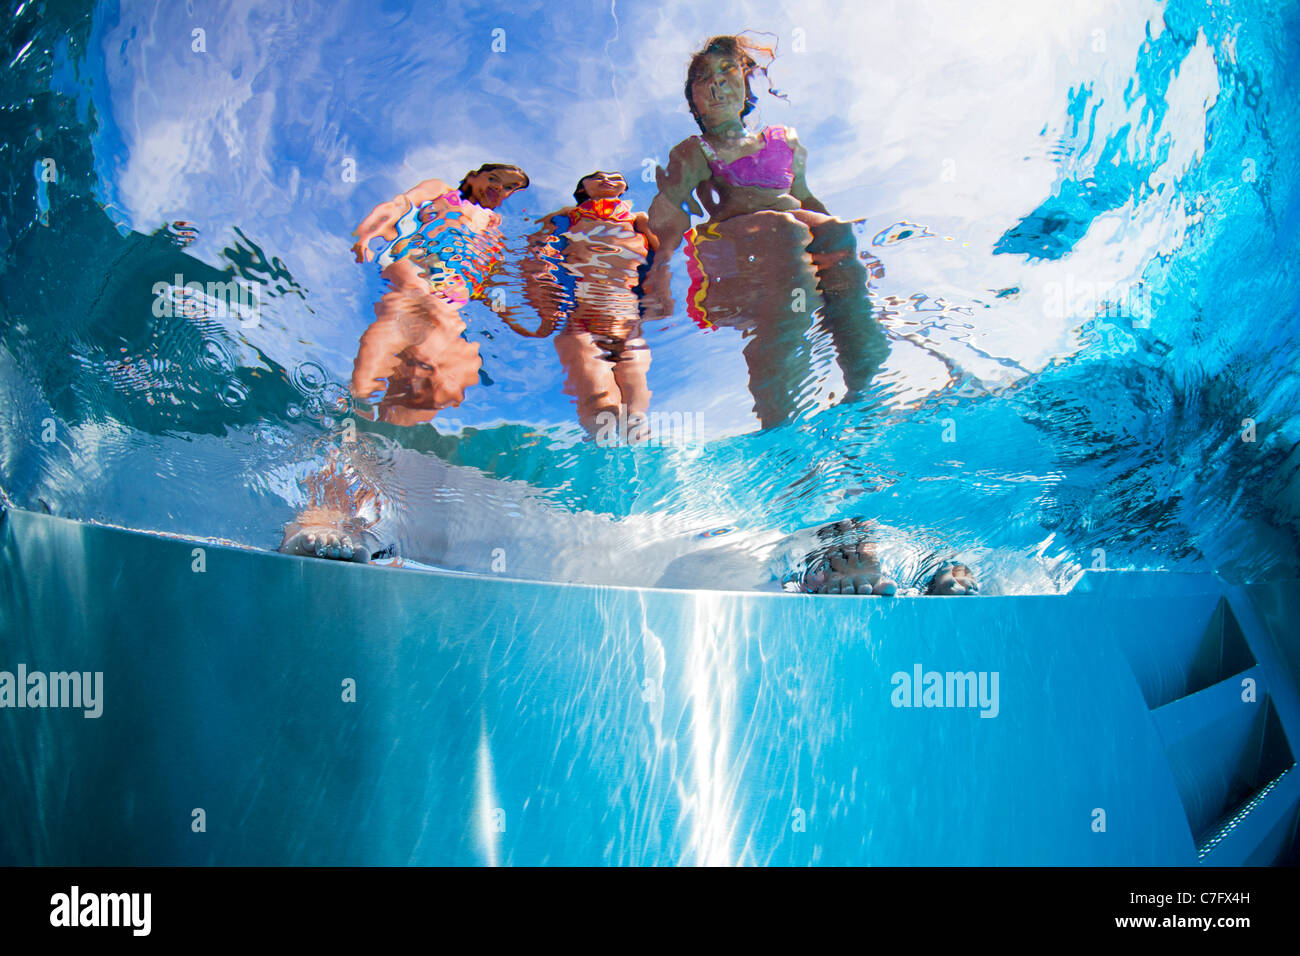 Children on the side of an open air swimming pool (Bellerive-sur-Allier - France). Underwater view. - Stock Image